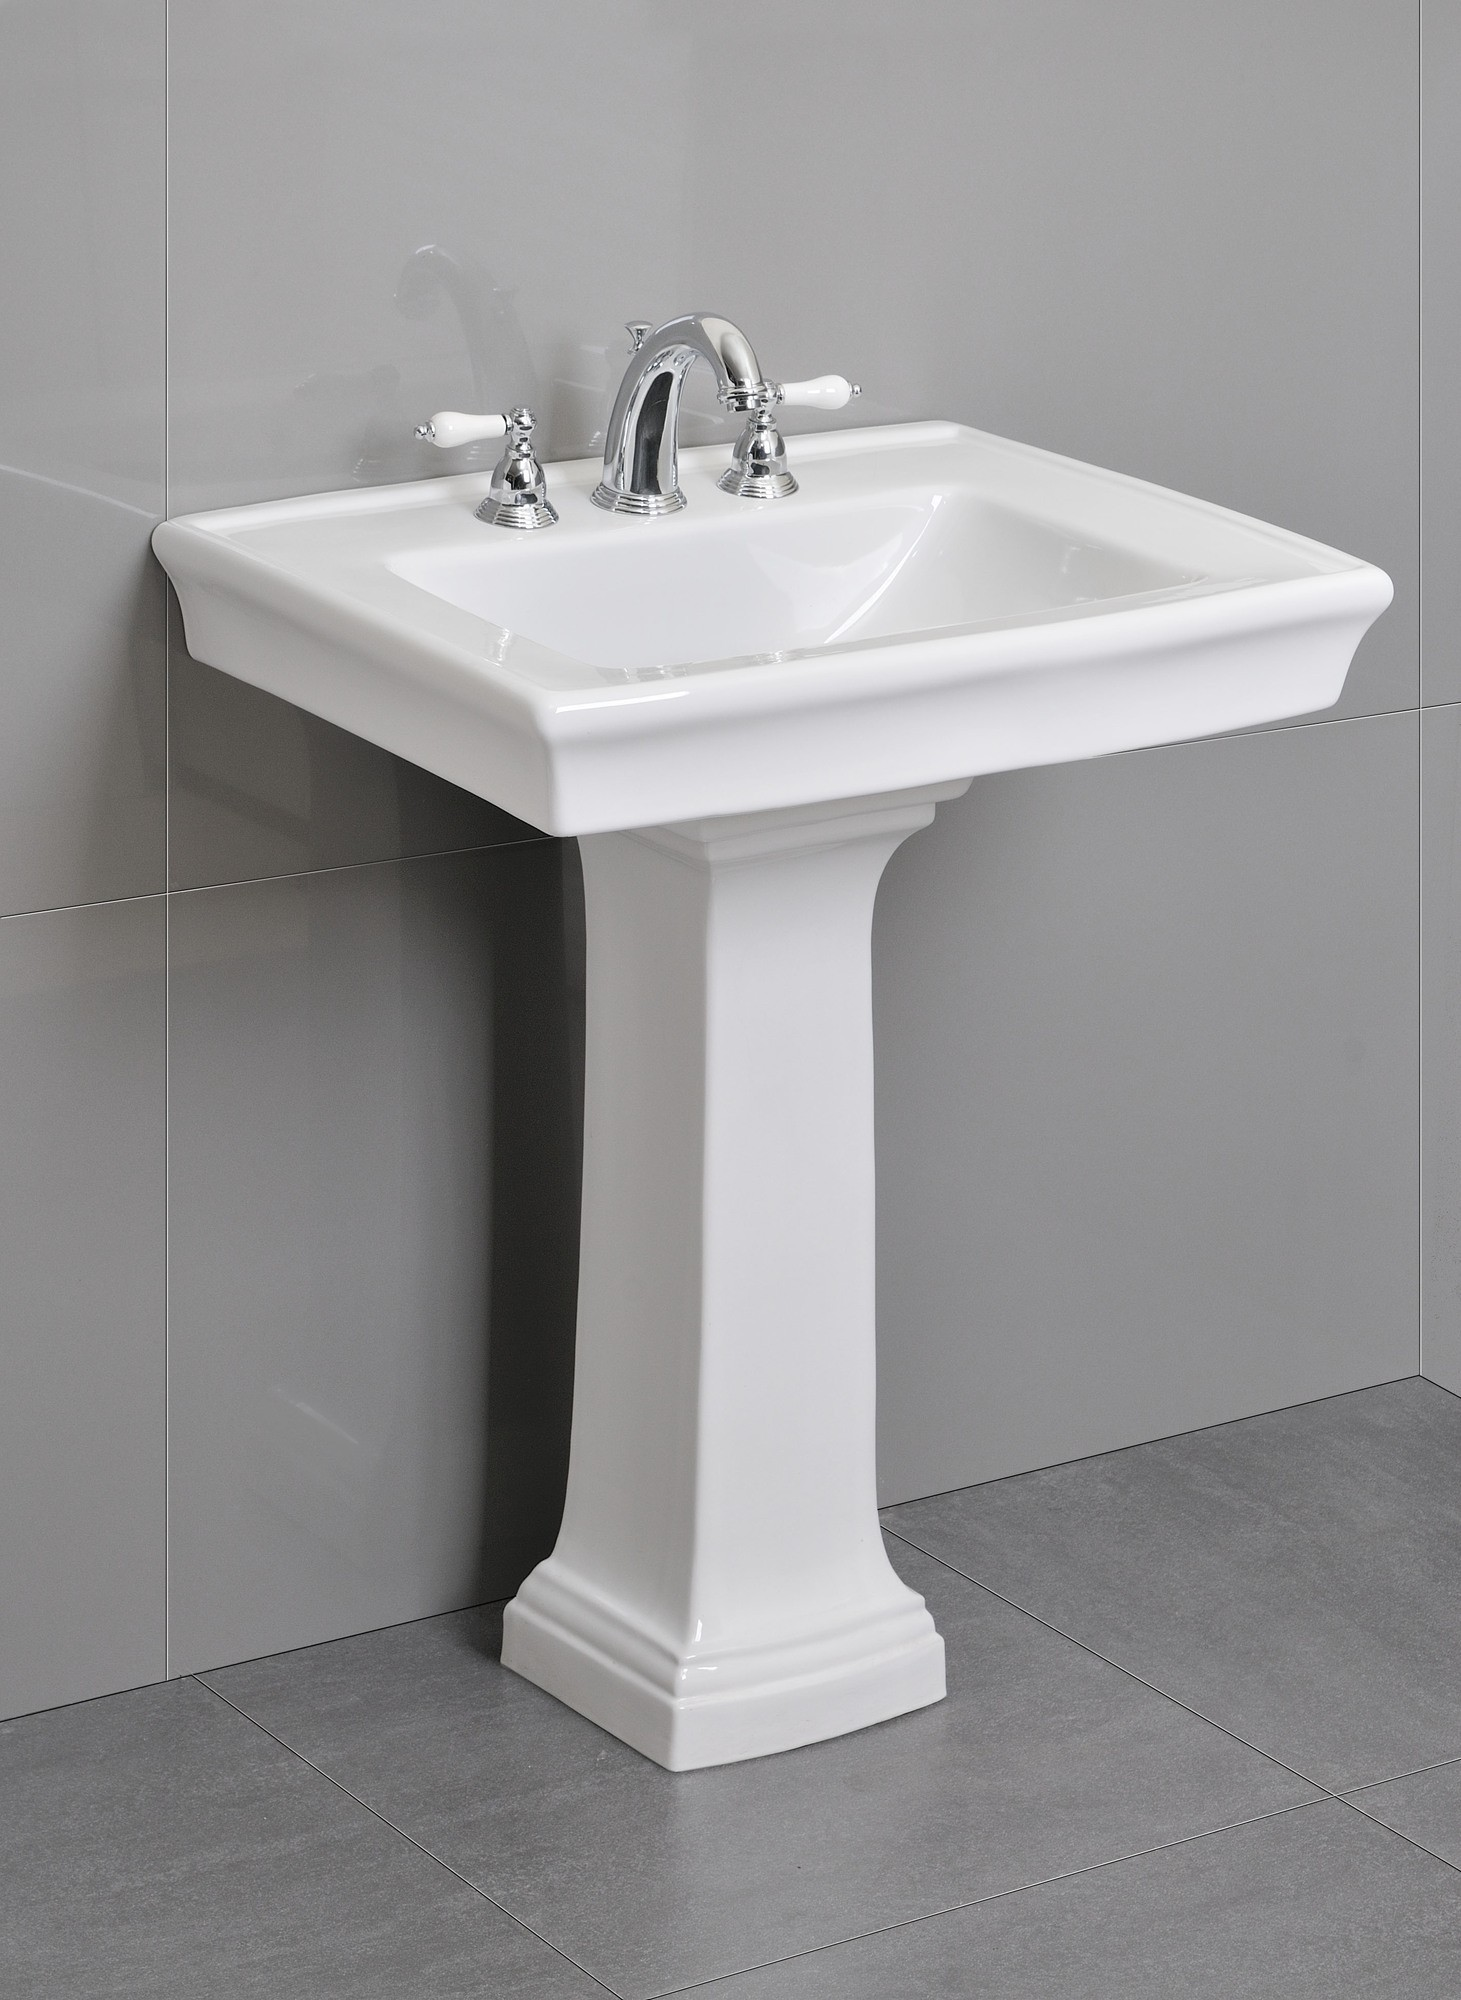 Kohler Bathroom Pedestal Sinks